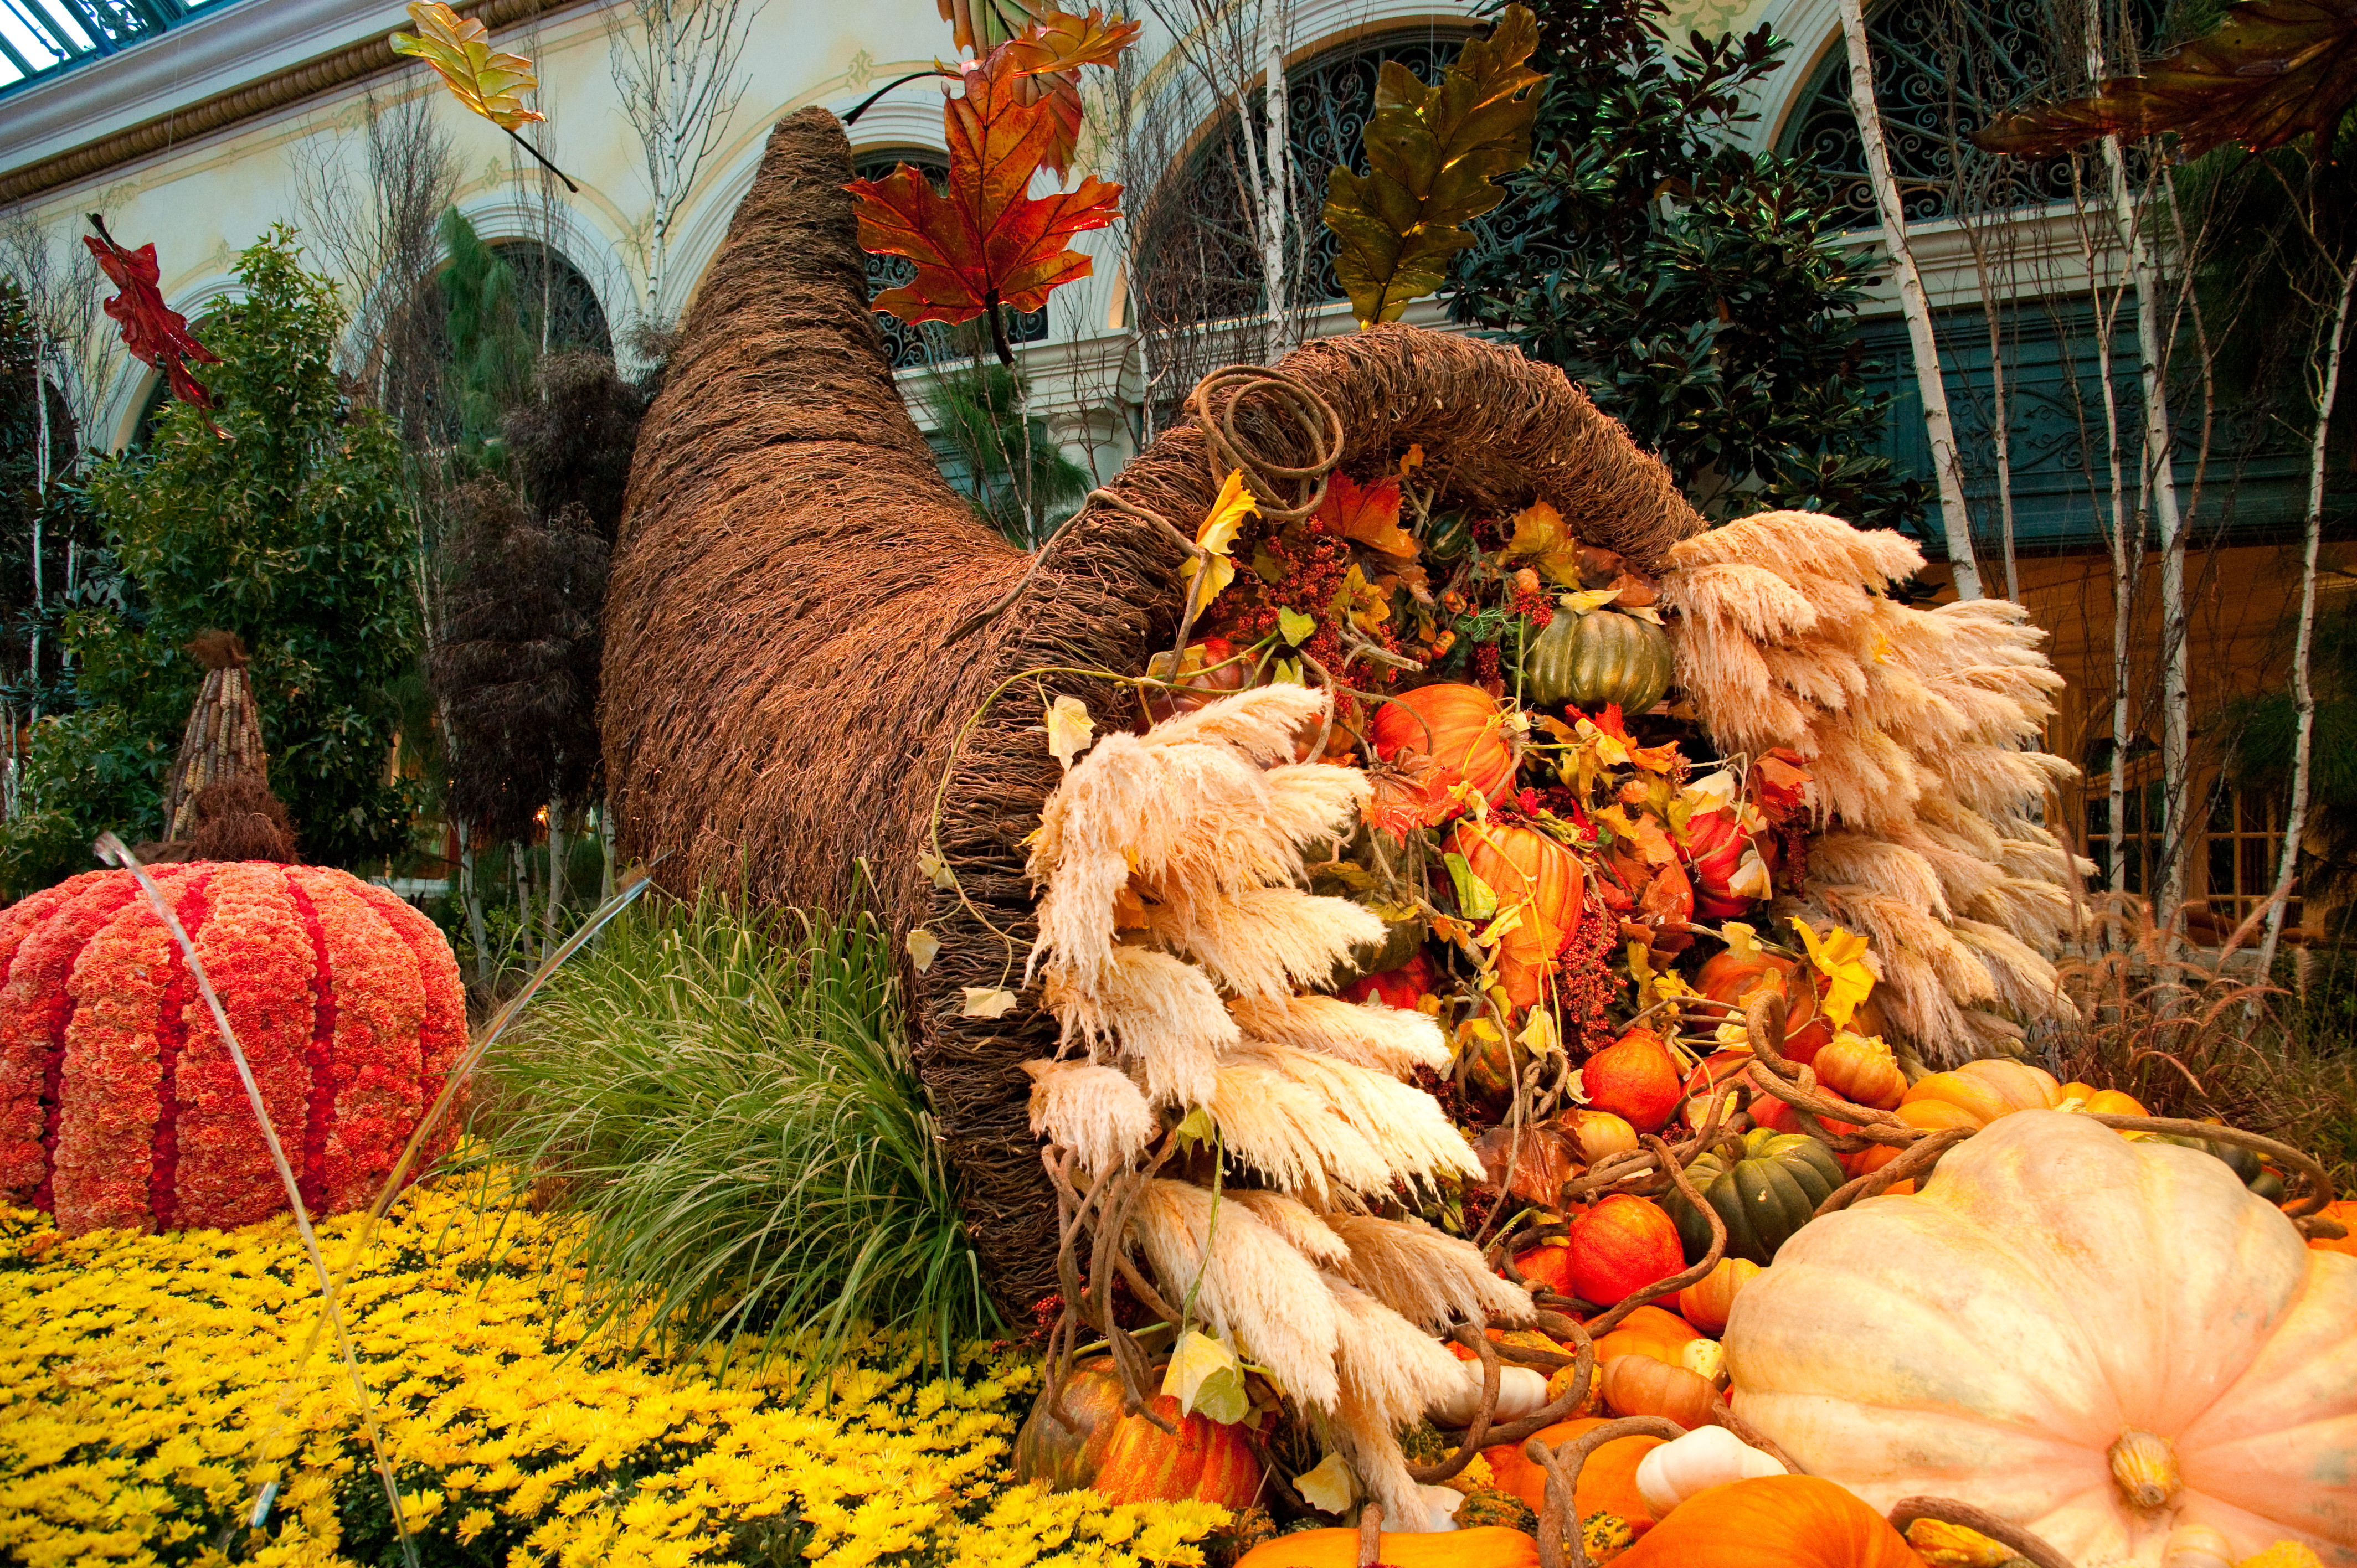 Captivating colors of autumn abound at bellagio 39 s conservatory botanical gardens - Fall landscaping ideas a mosaic of colors shapes and scents ...